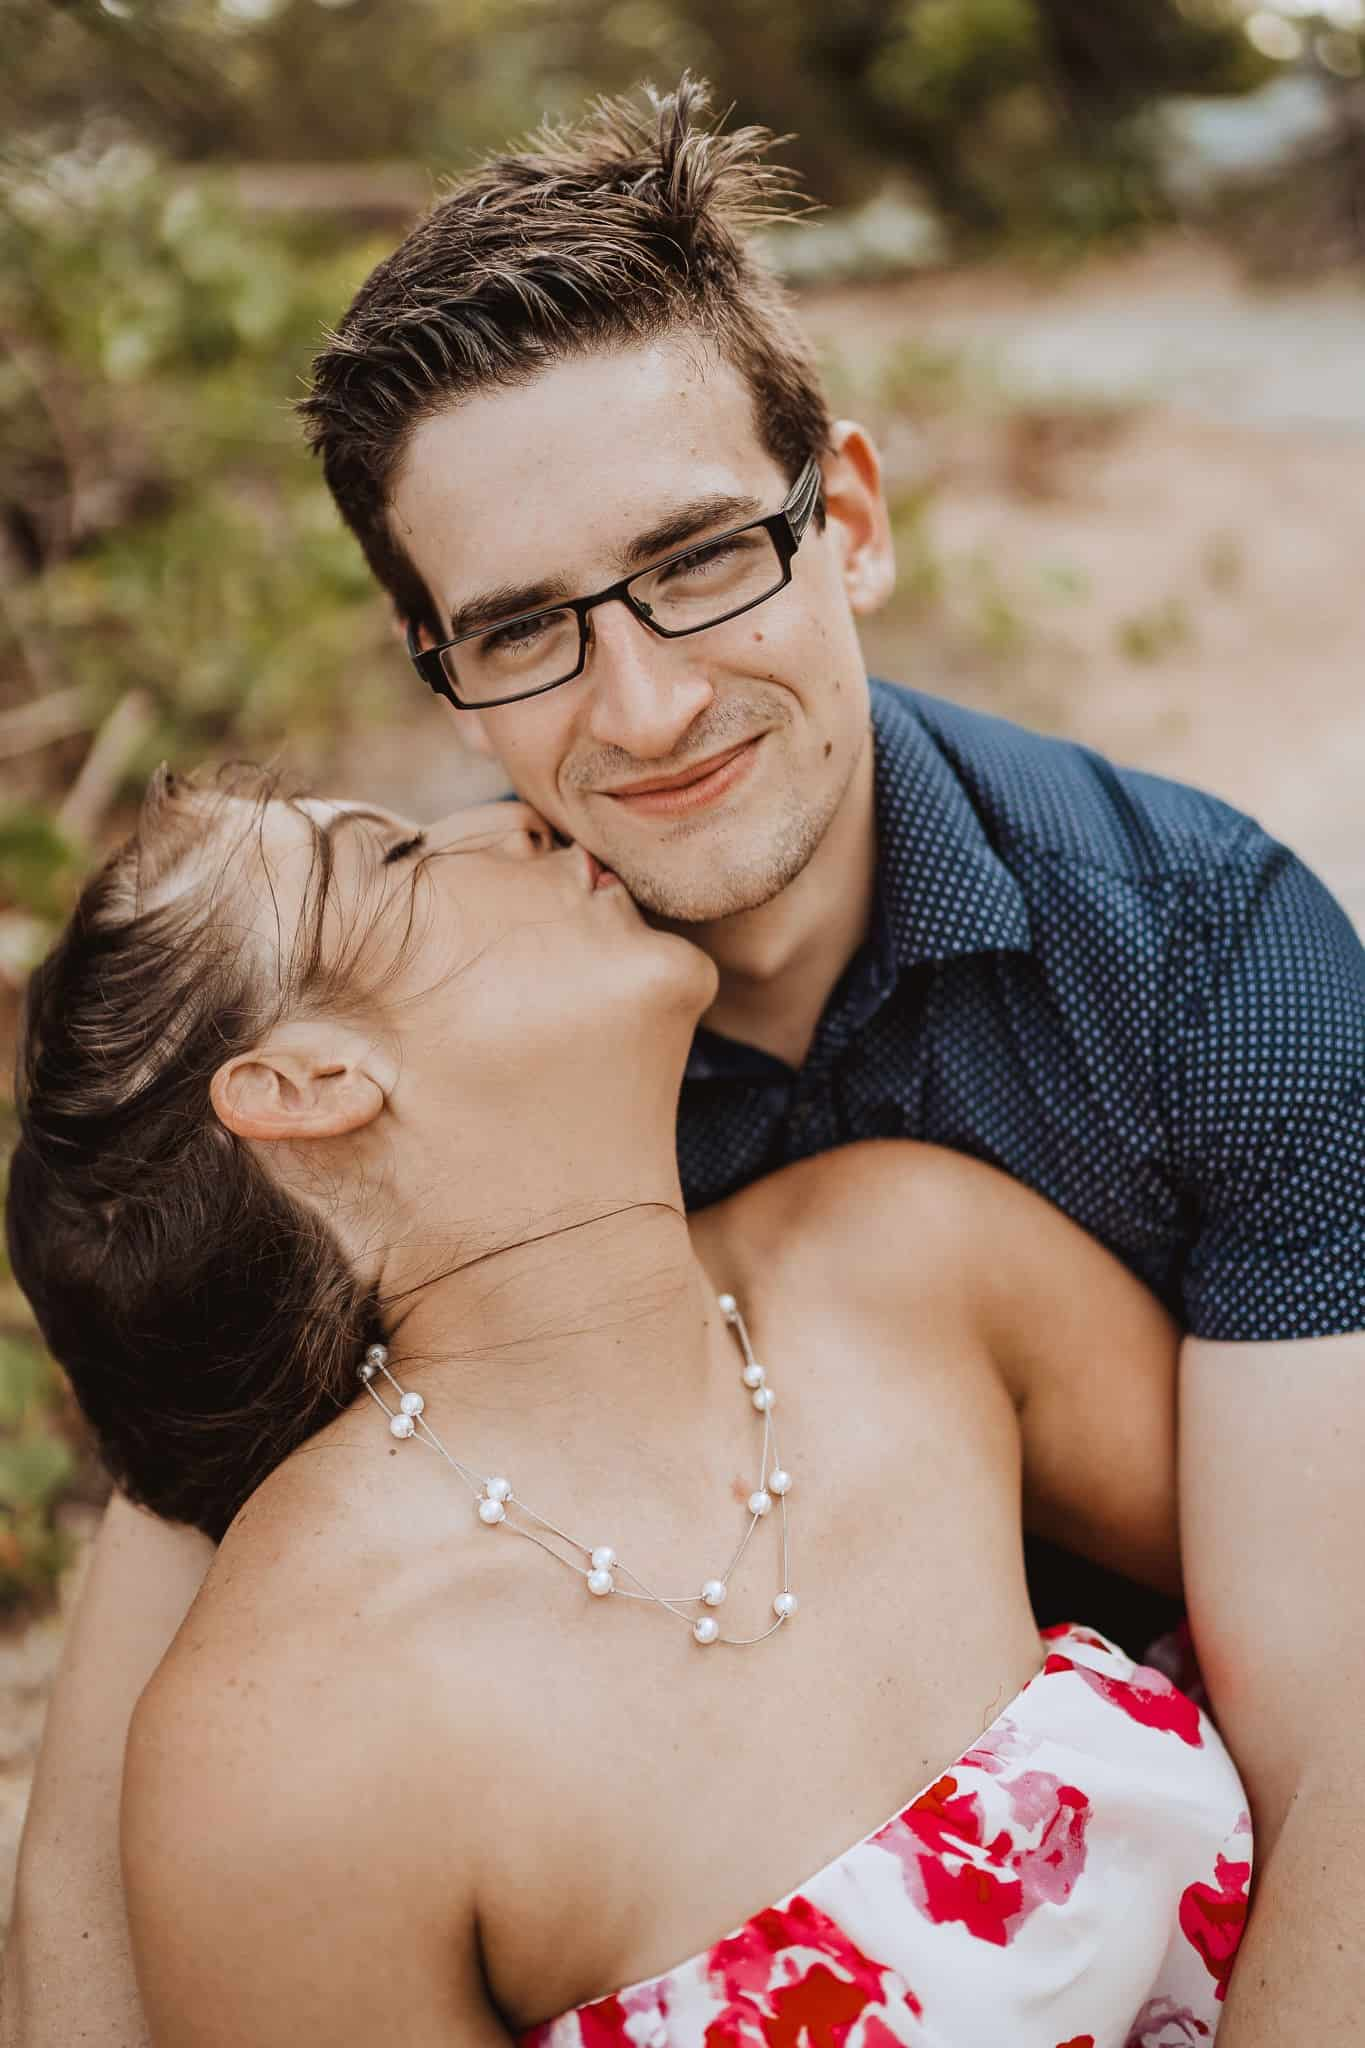 girl kisses boy with glasses